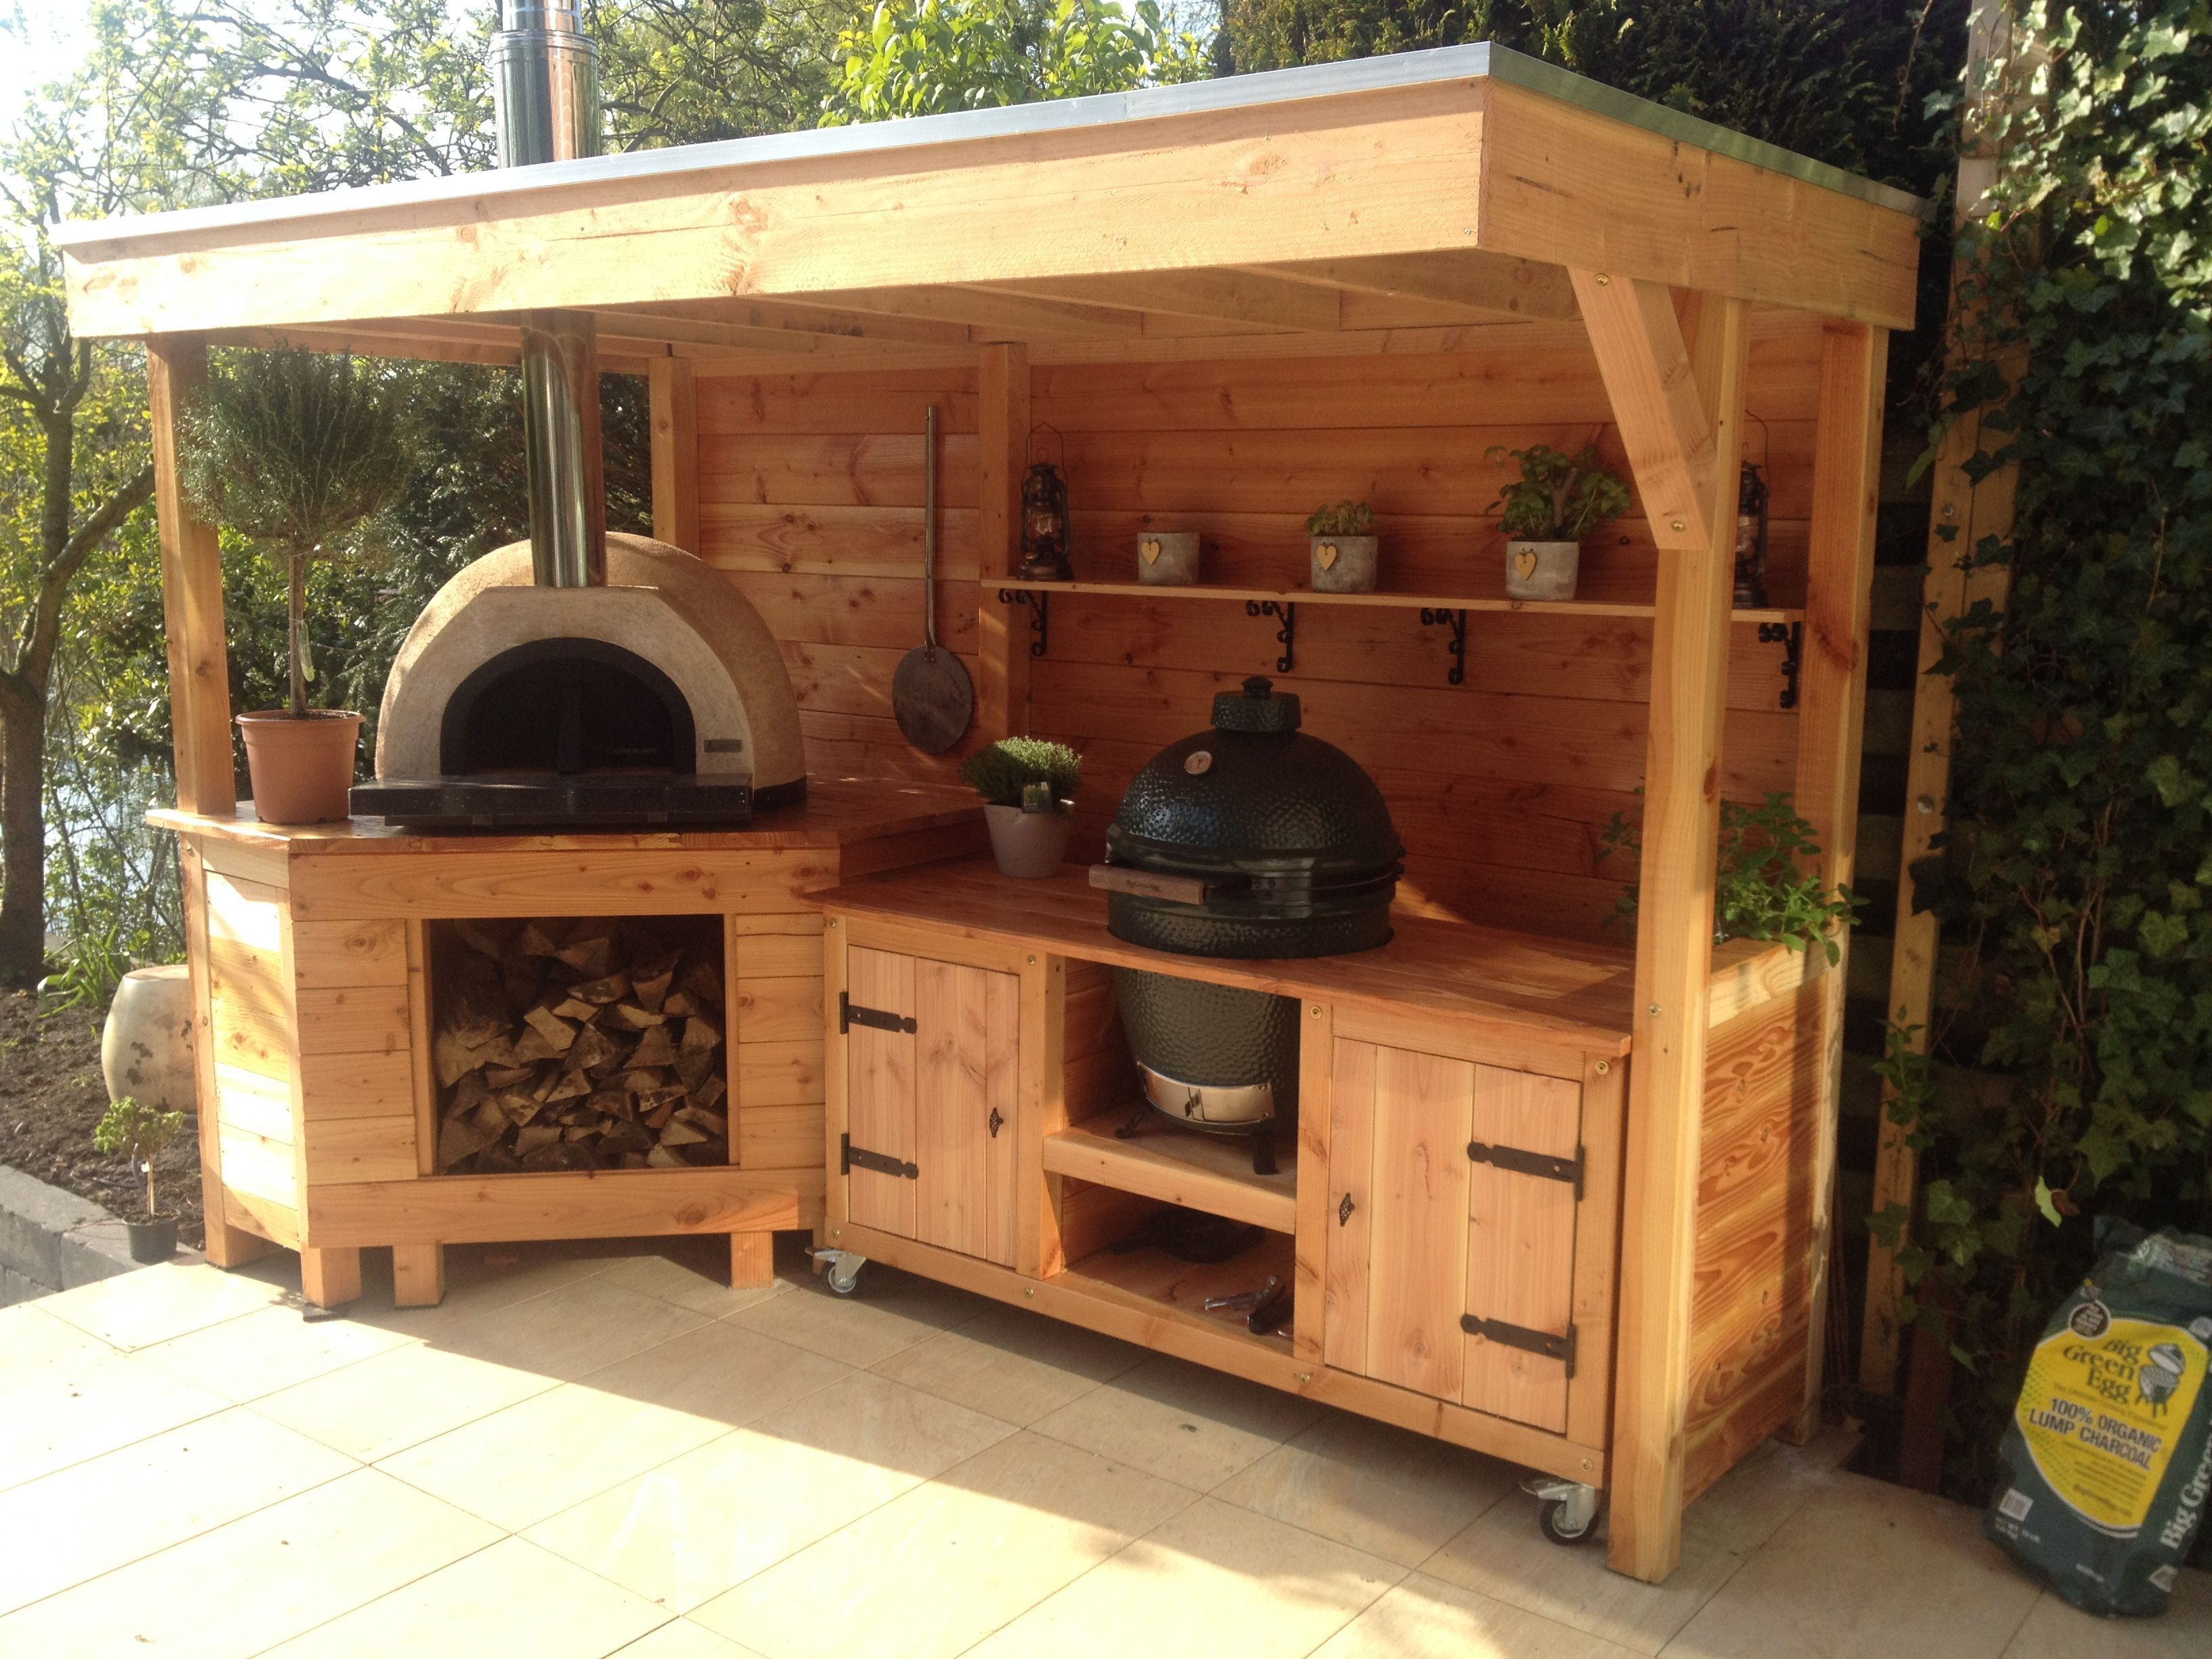 Locate Ideas And Ideas For Making Your Outside Kitchen Area Consisting Of Concepts Plans And Photos Diy Outdoor Kitchen Backyard Kitchen Outdoor Living Blog